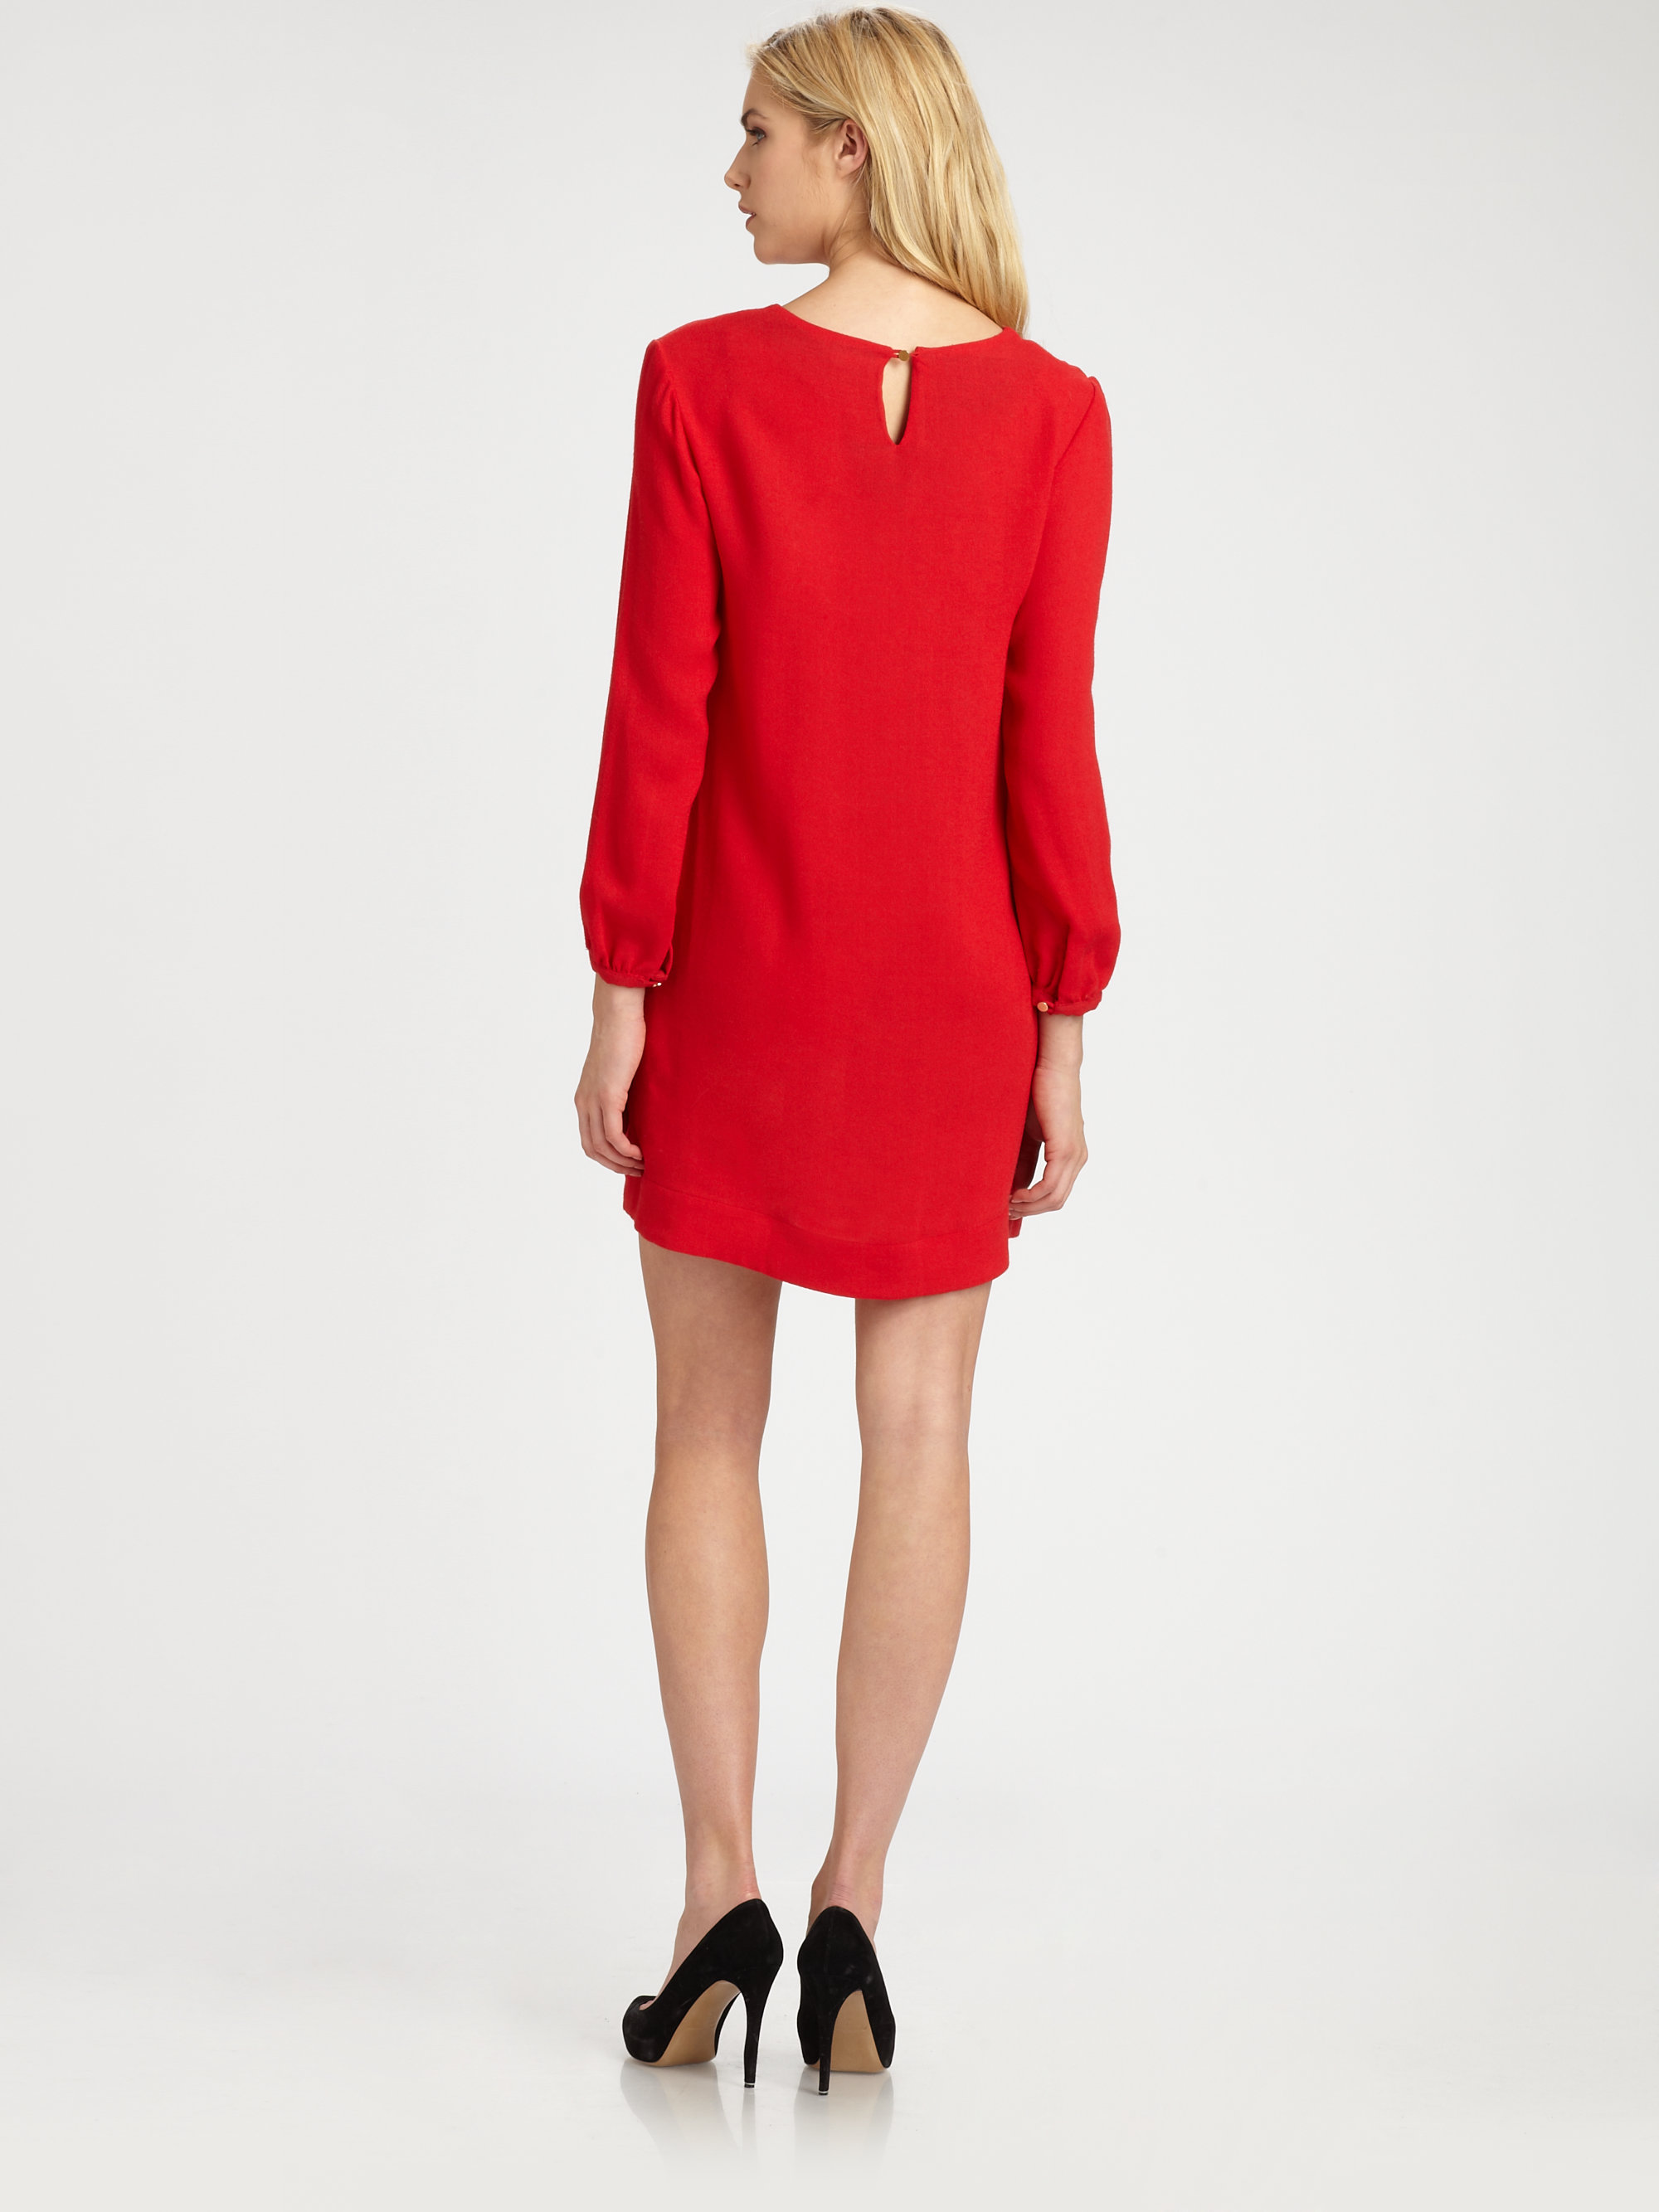 aae2e9e31ef Lyst - Steven Alan Sammy Dress in Red